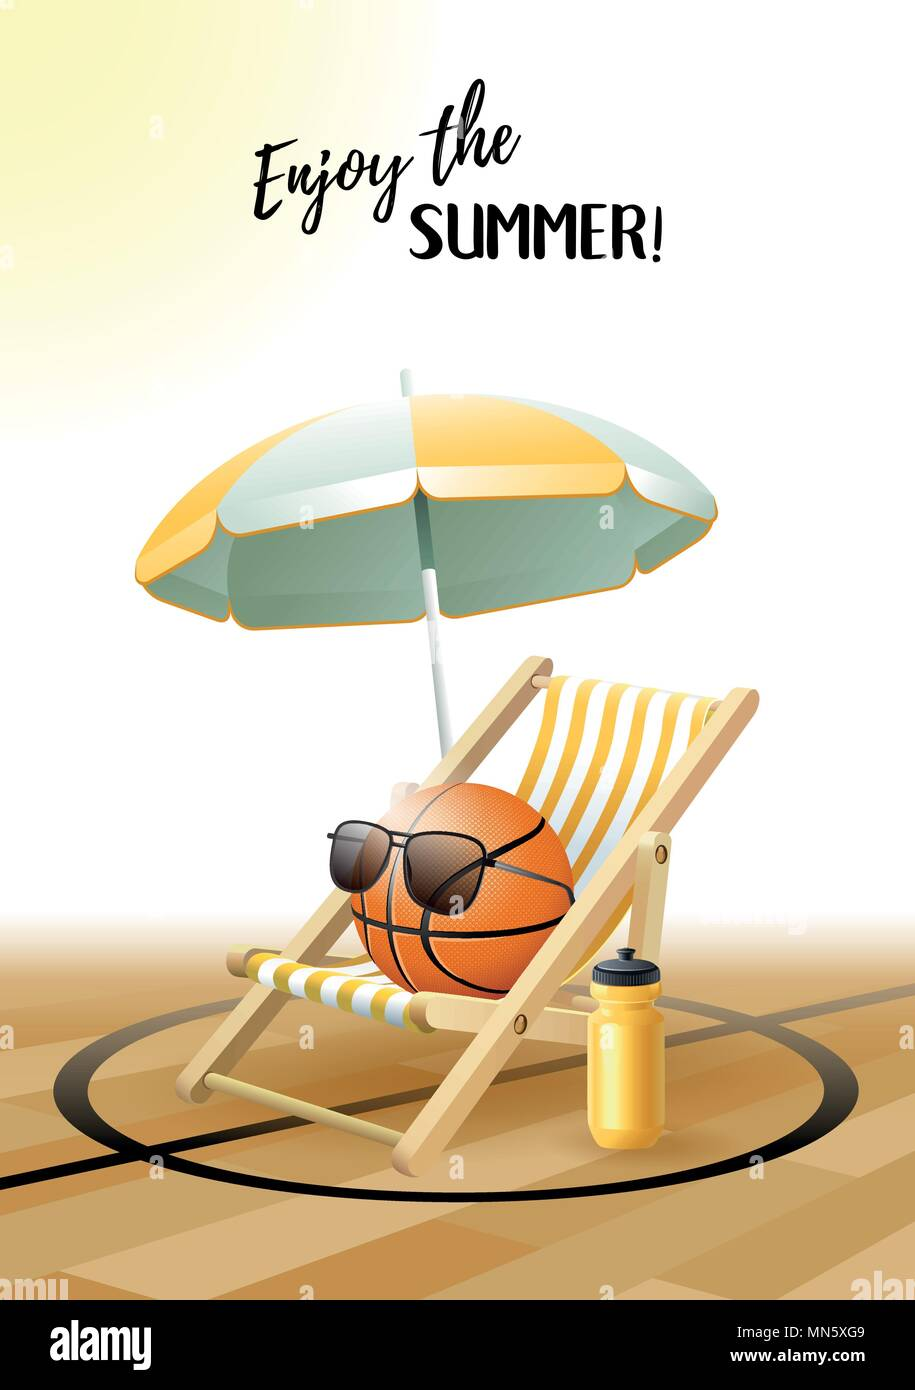 Enjoy the Summer! Sports card. Basketball ball with sunglasses, beach umbrella, deck chair and water bottle on the parquet floor. Vector illustration. - Stock Vector